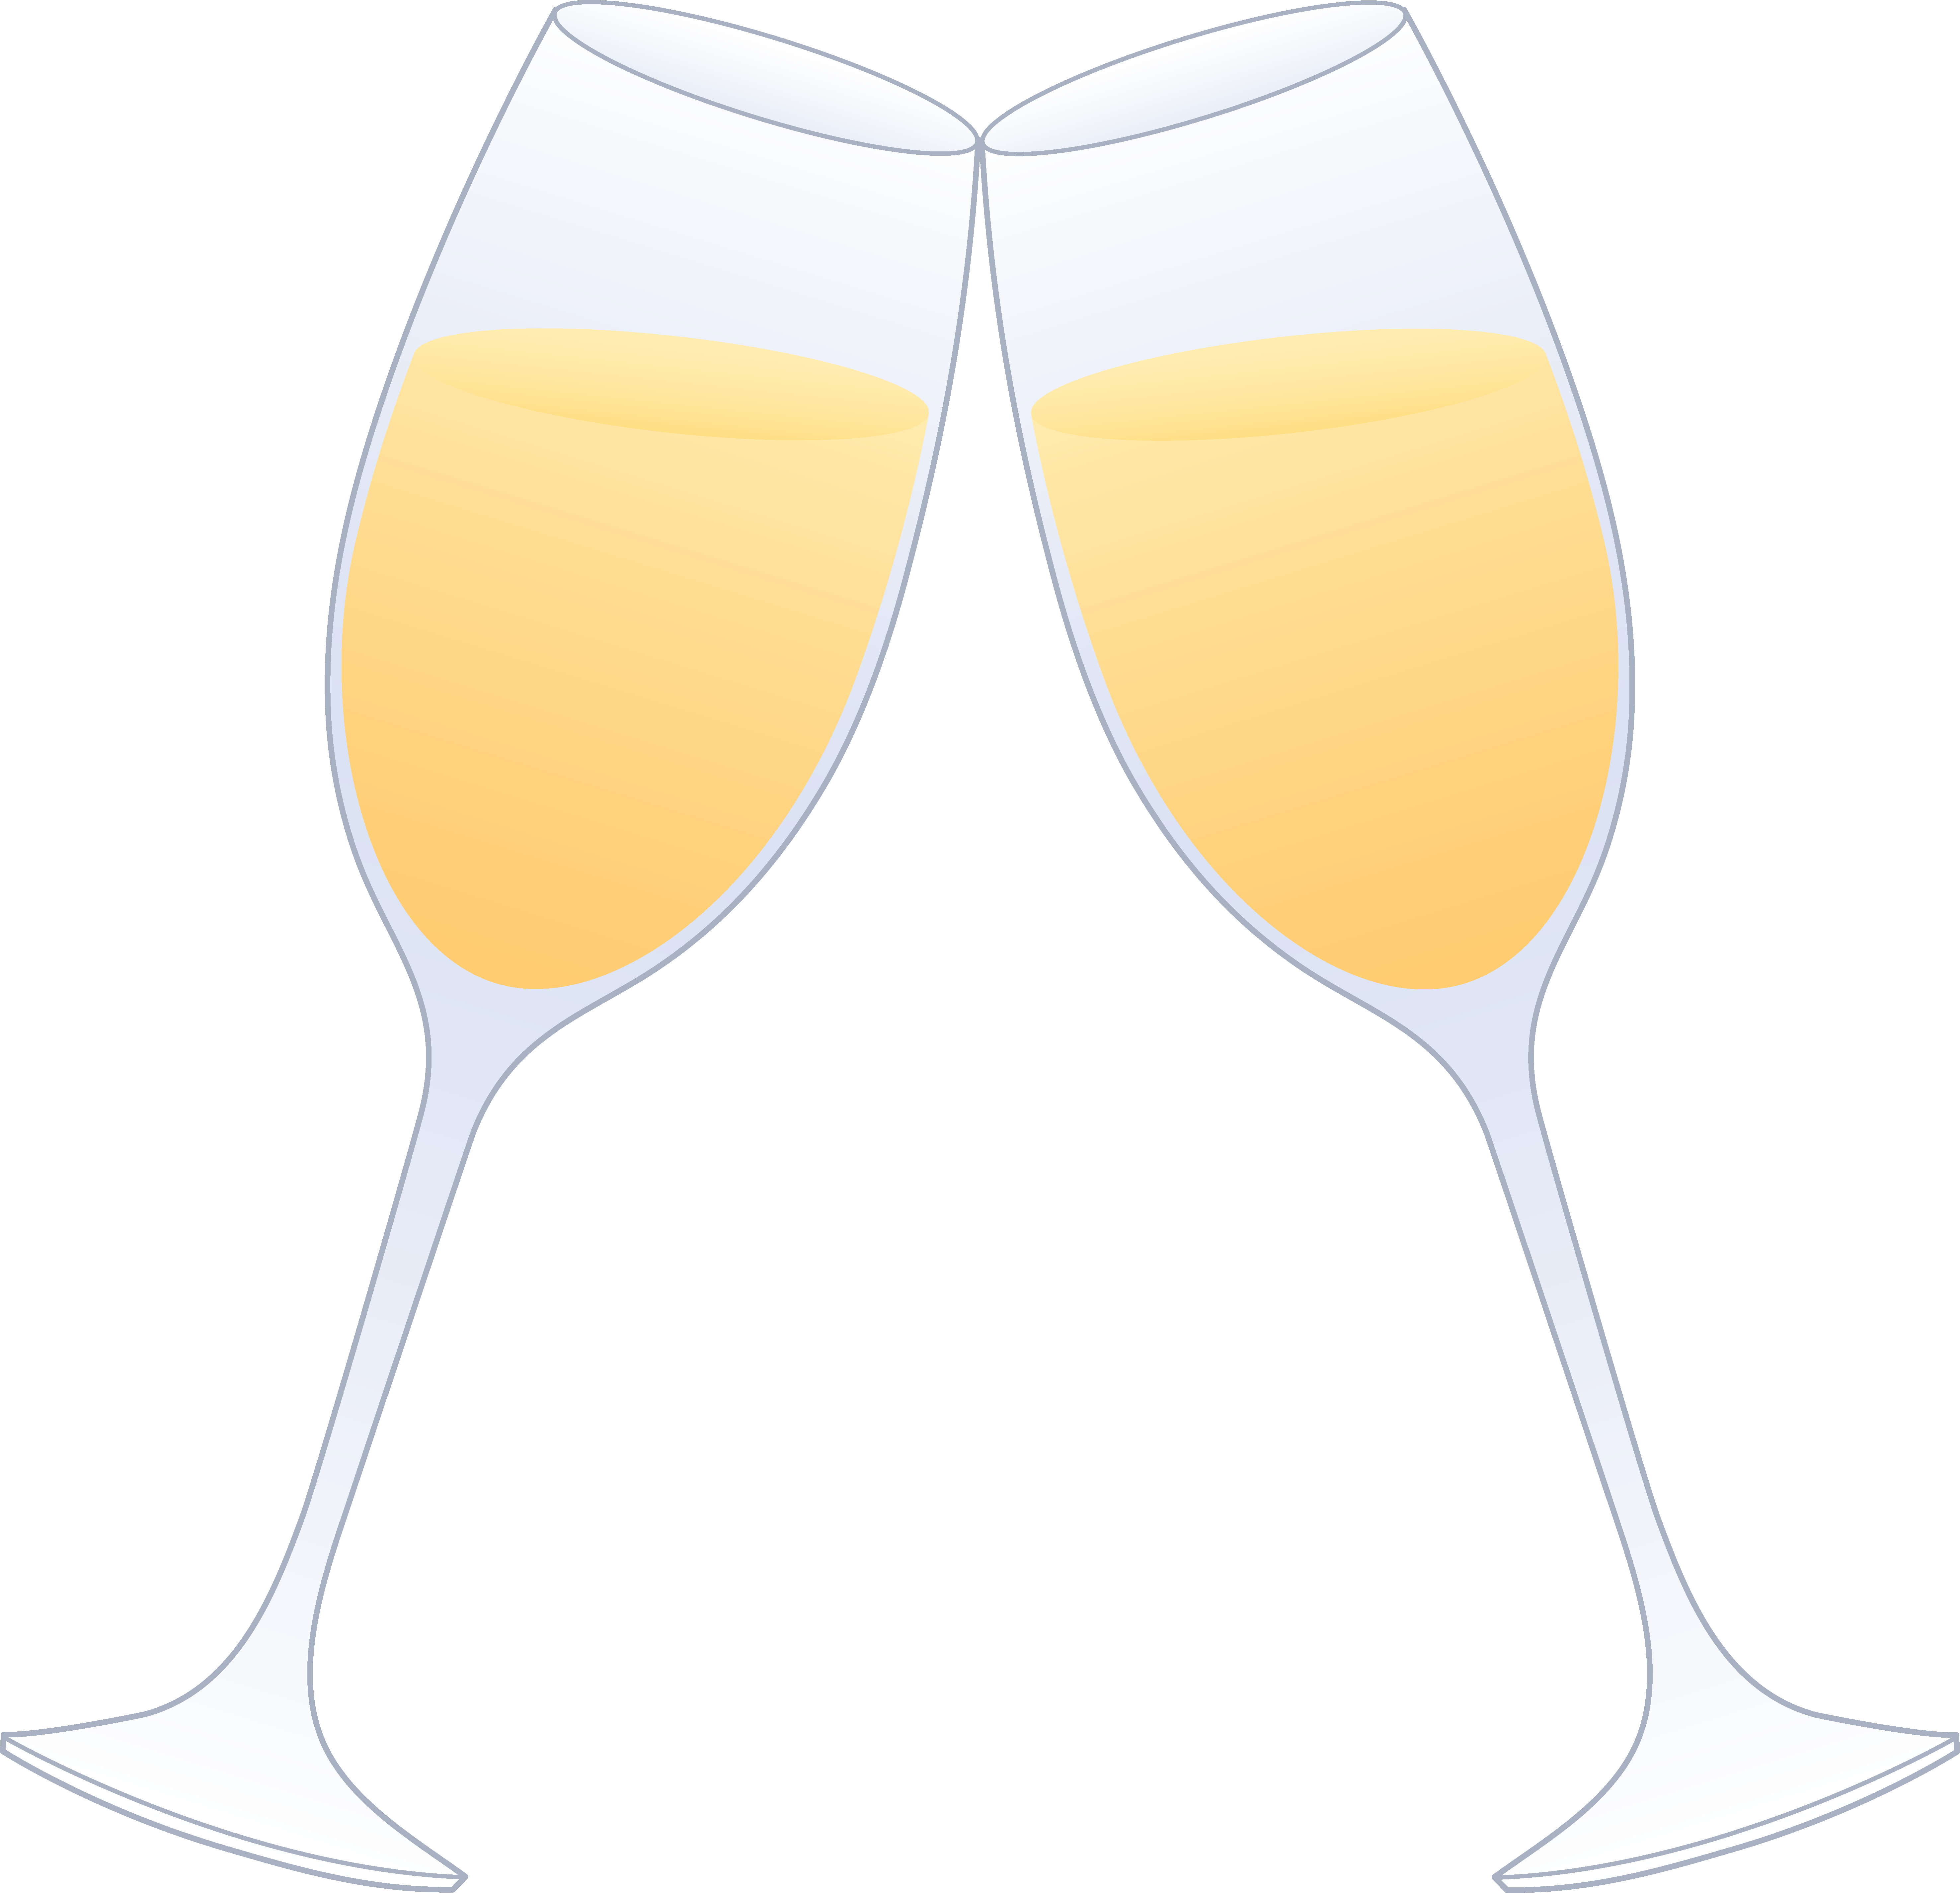 5905x5702 Champagne Glass Glasses Of Champagne Clinking Free Clip Art 2